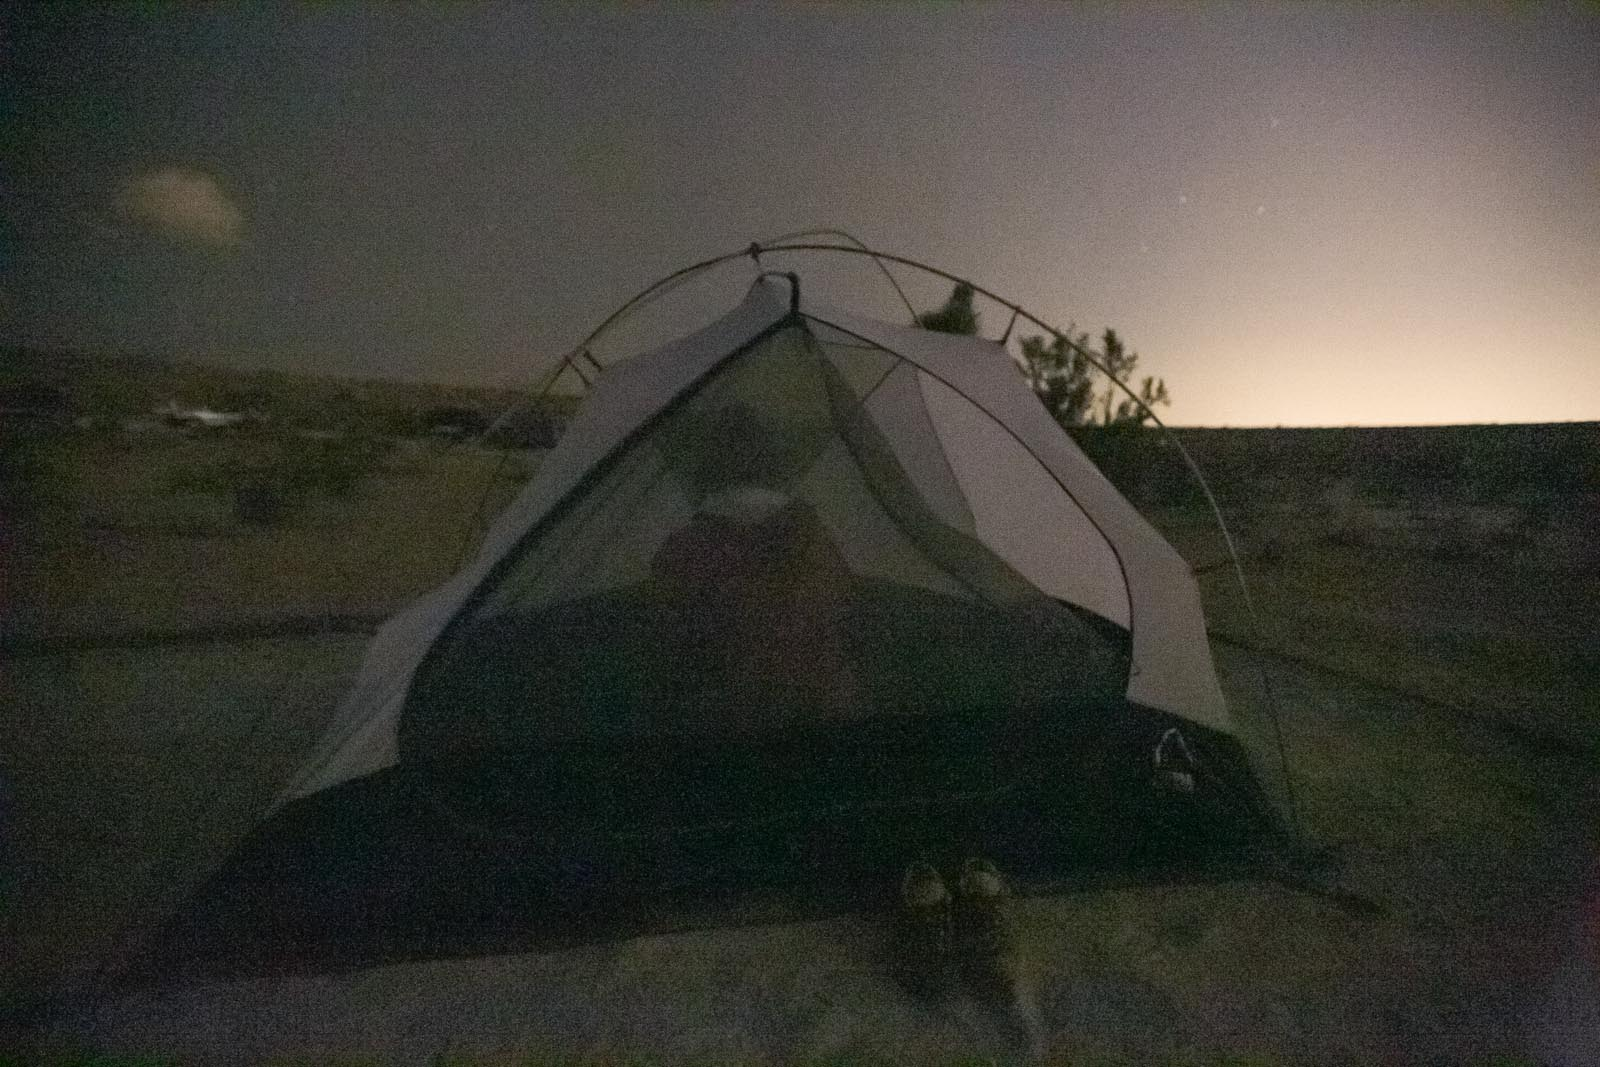 The tent didn't fare so well with the 50+ mph winds. Once it folded on our faces we figured it was time to take it down.